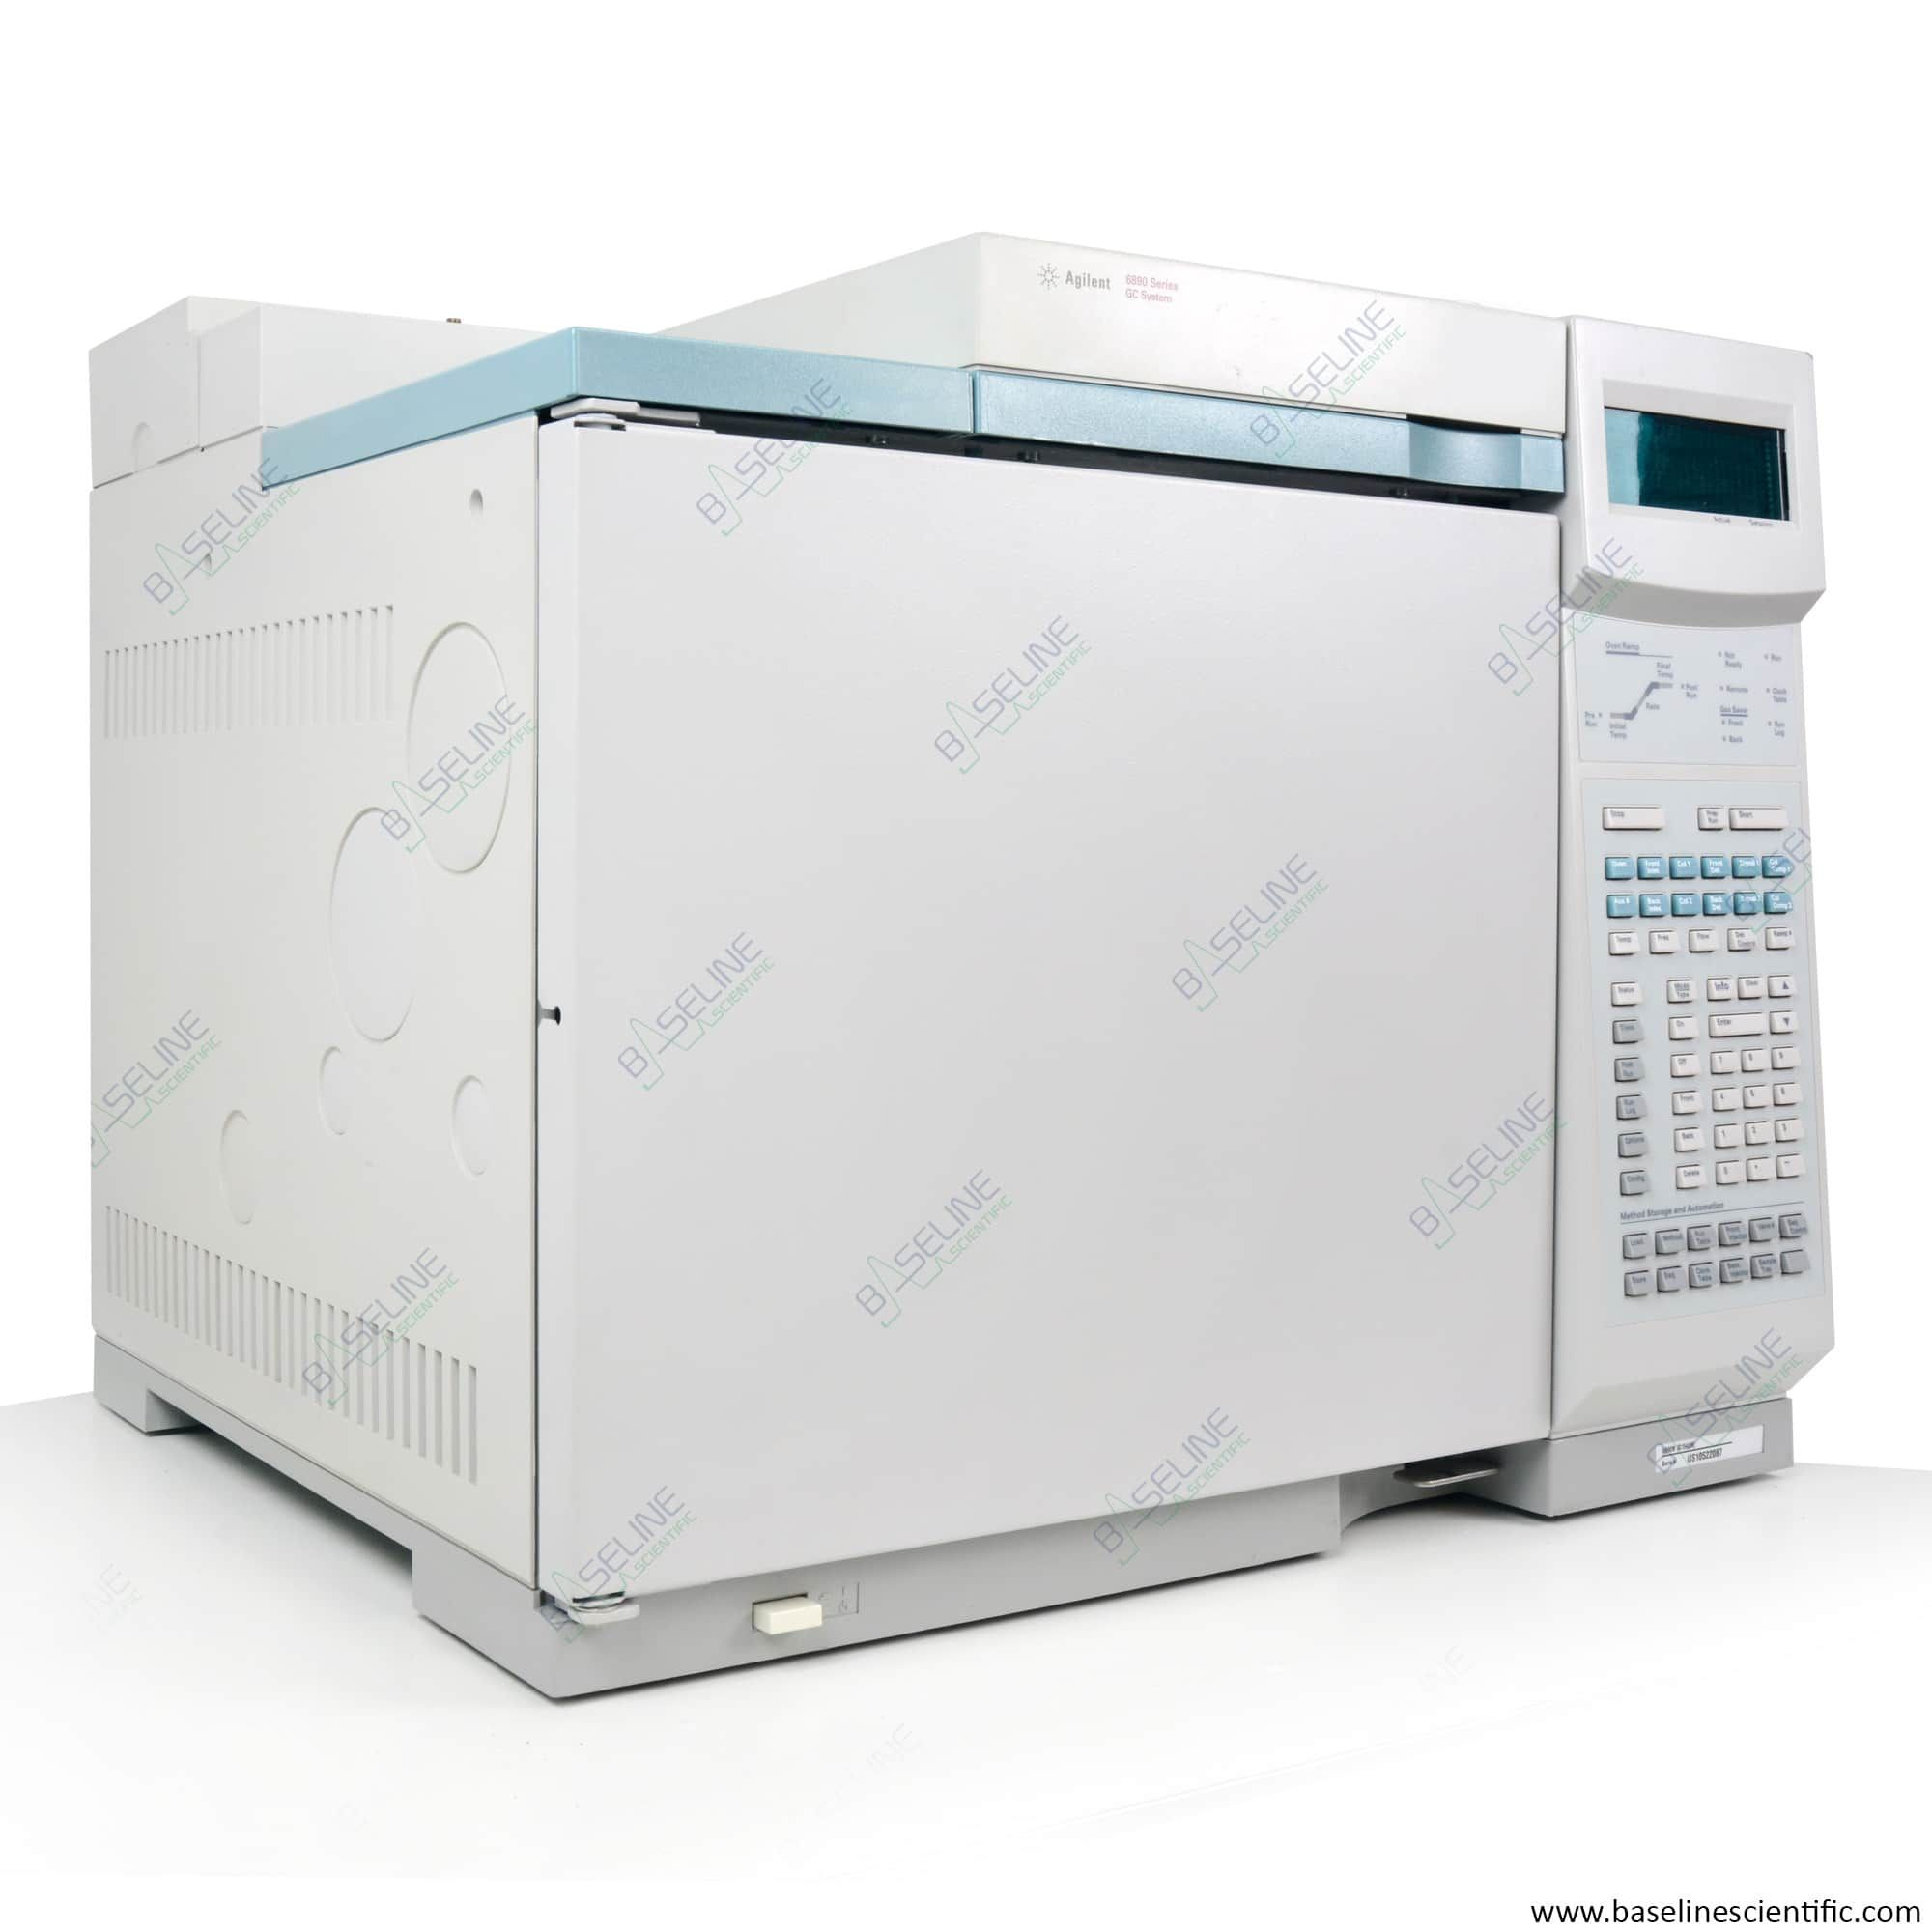 Refurbished Agilent 6890 GC with Dual SSL inlet and Dual FID with One Year Warranty